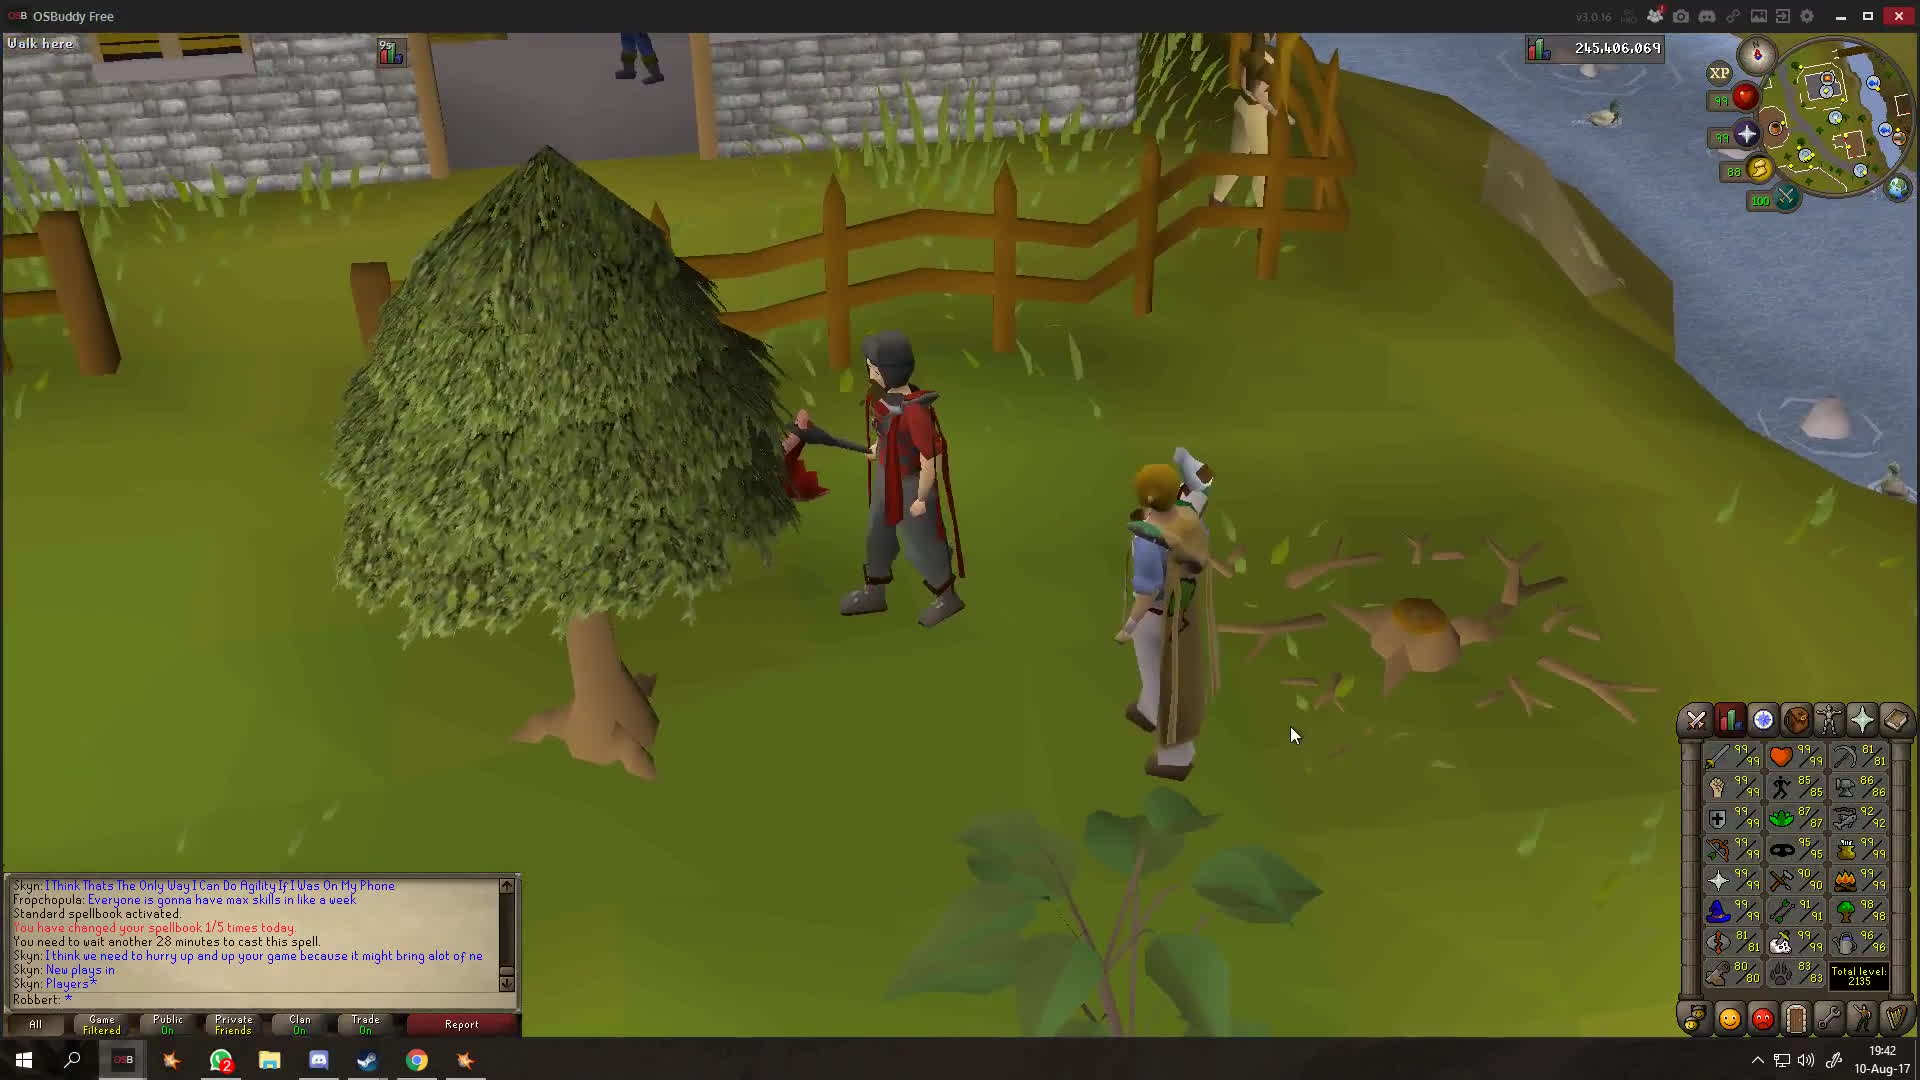 Oldschool Runescape Gifs Search | Search & Share on Homdor